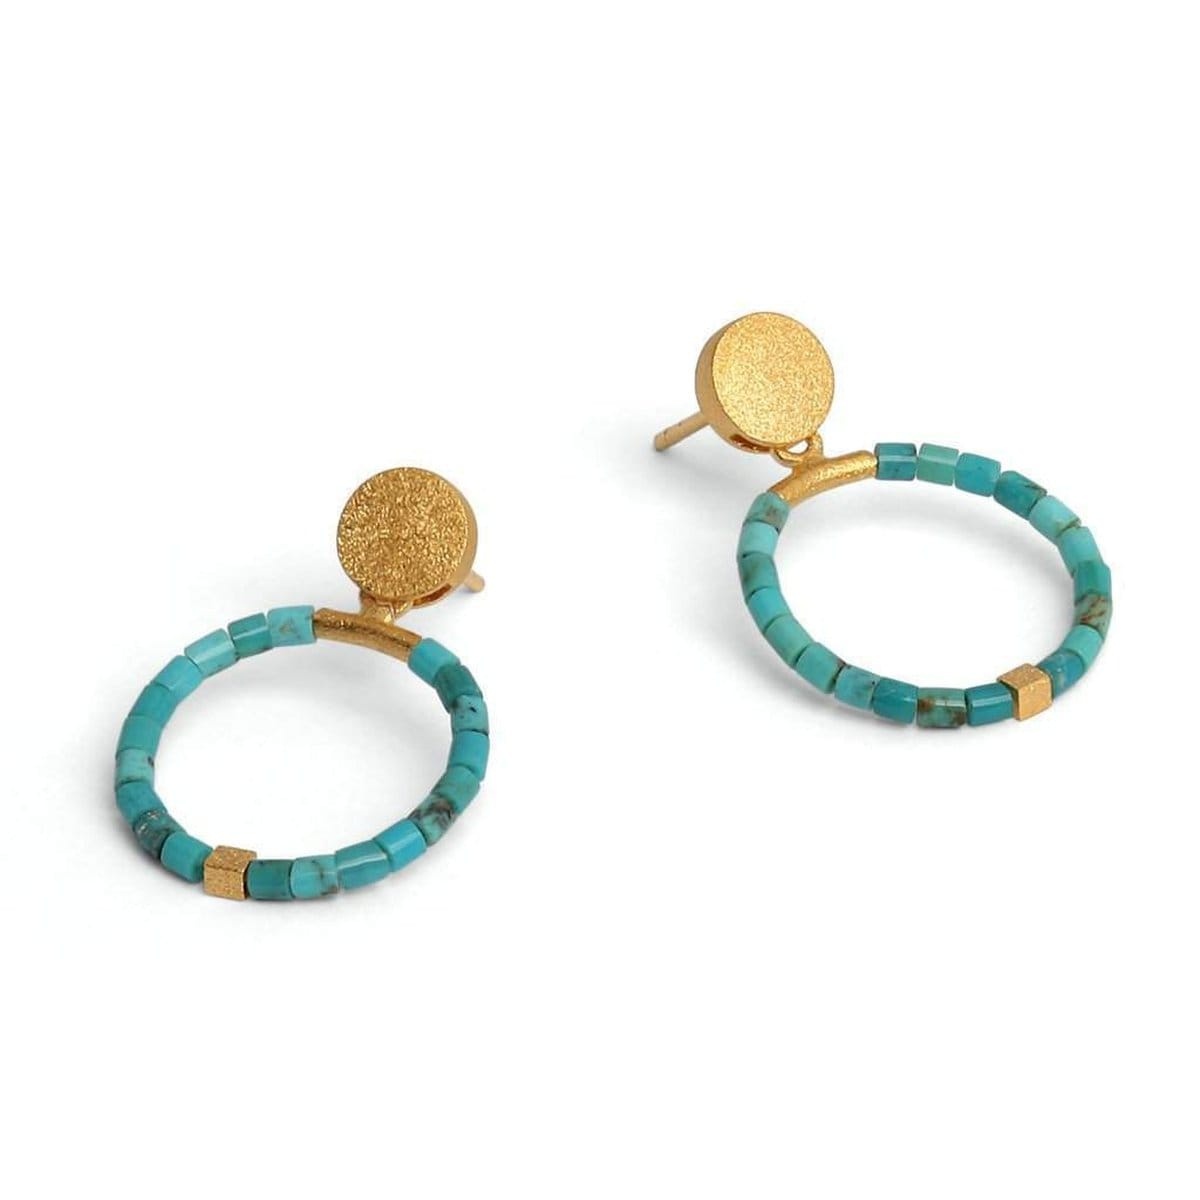 Circolo Turquoise Earrings - 15586256-Bernd Wolf-Renee Taylor Gallery